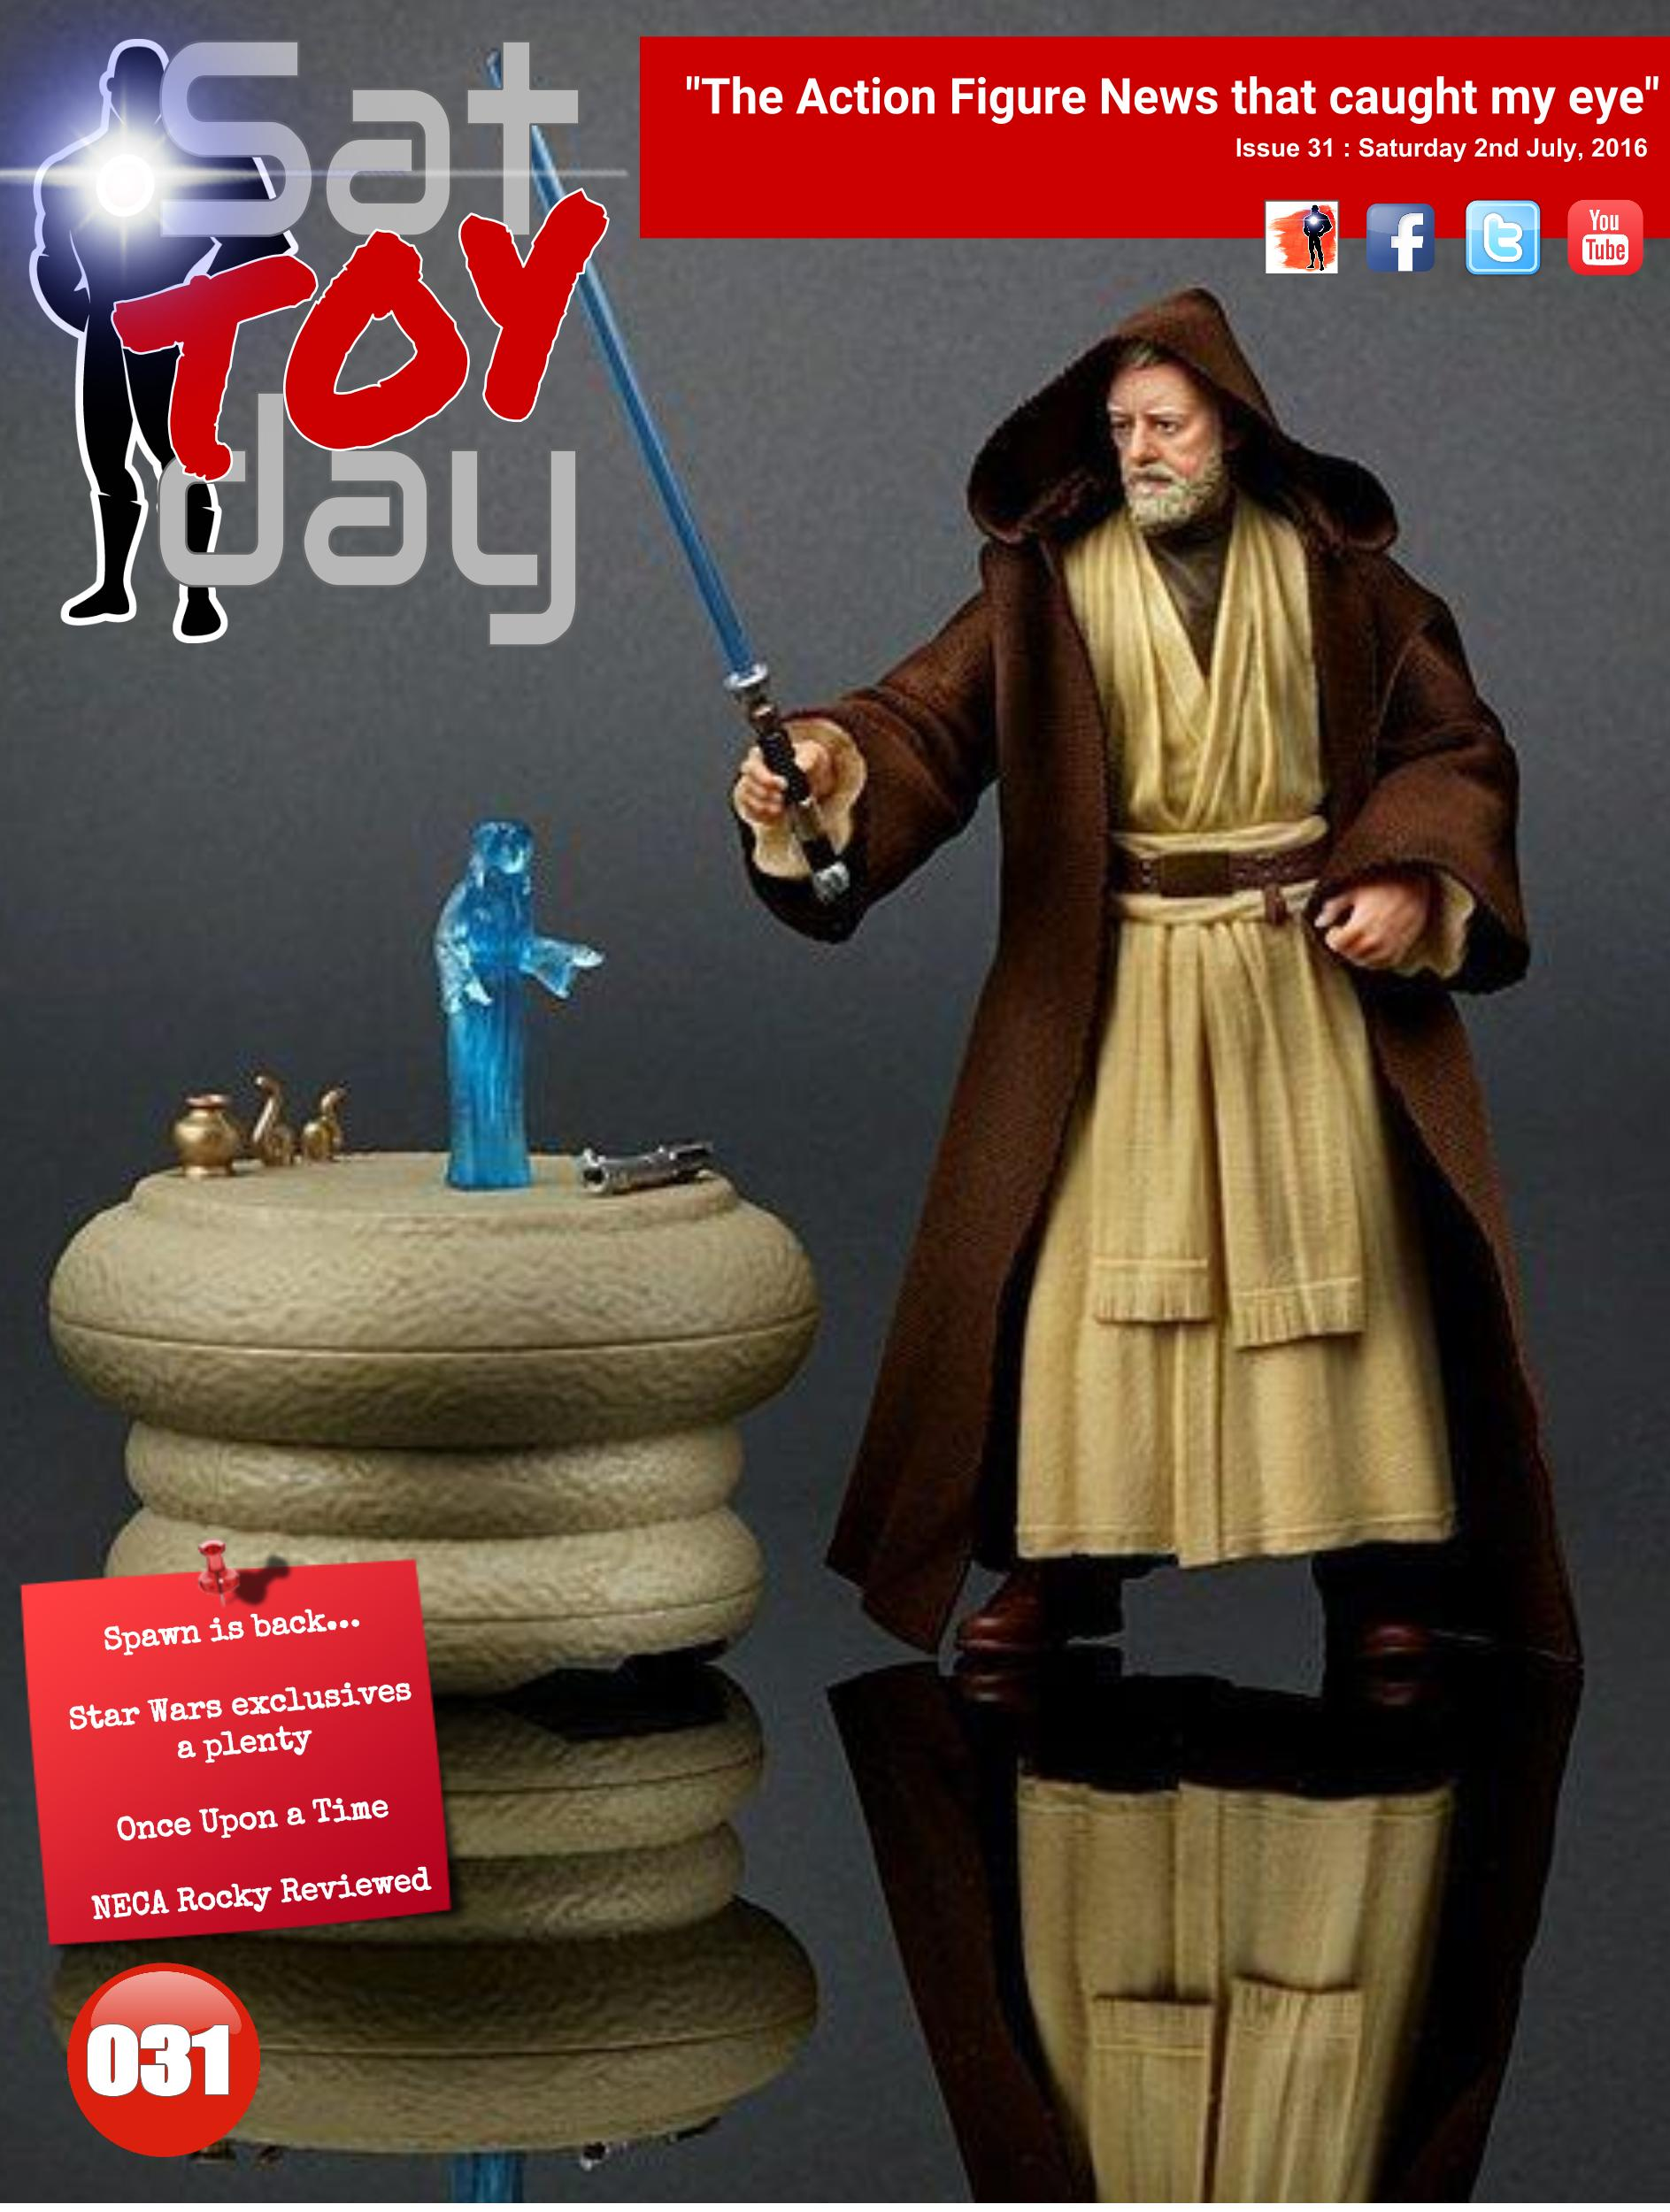 031 Action Figure Sat-TOY-day News, 2nd July 2016